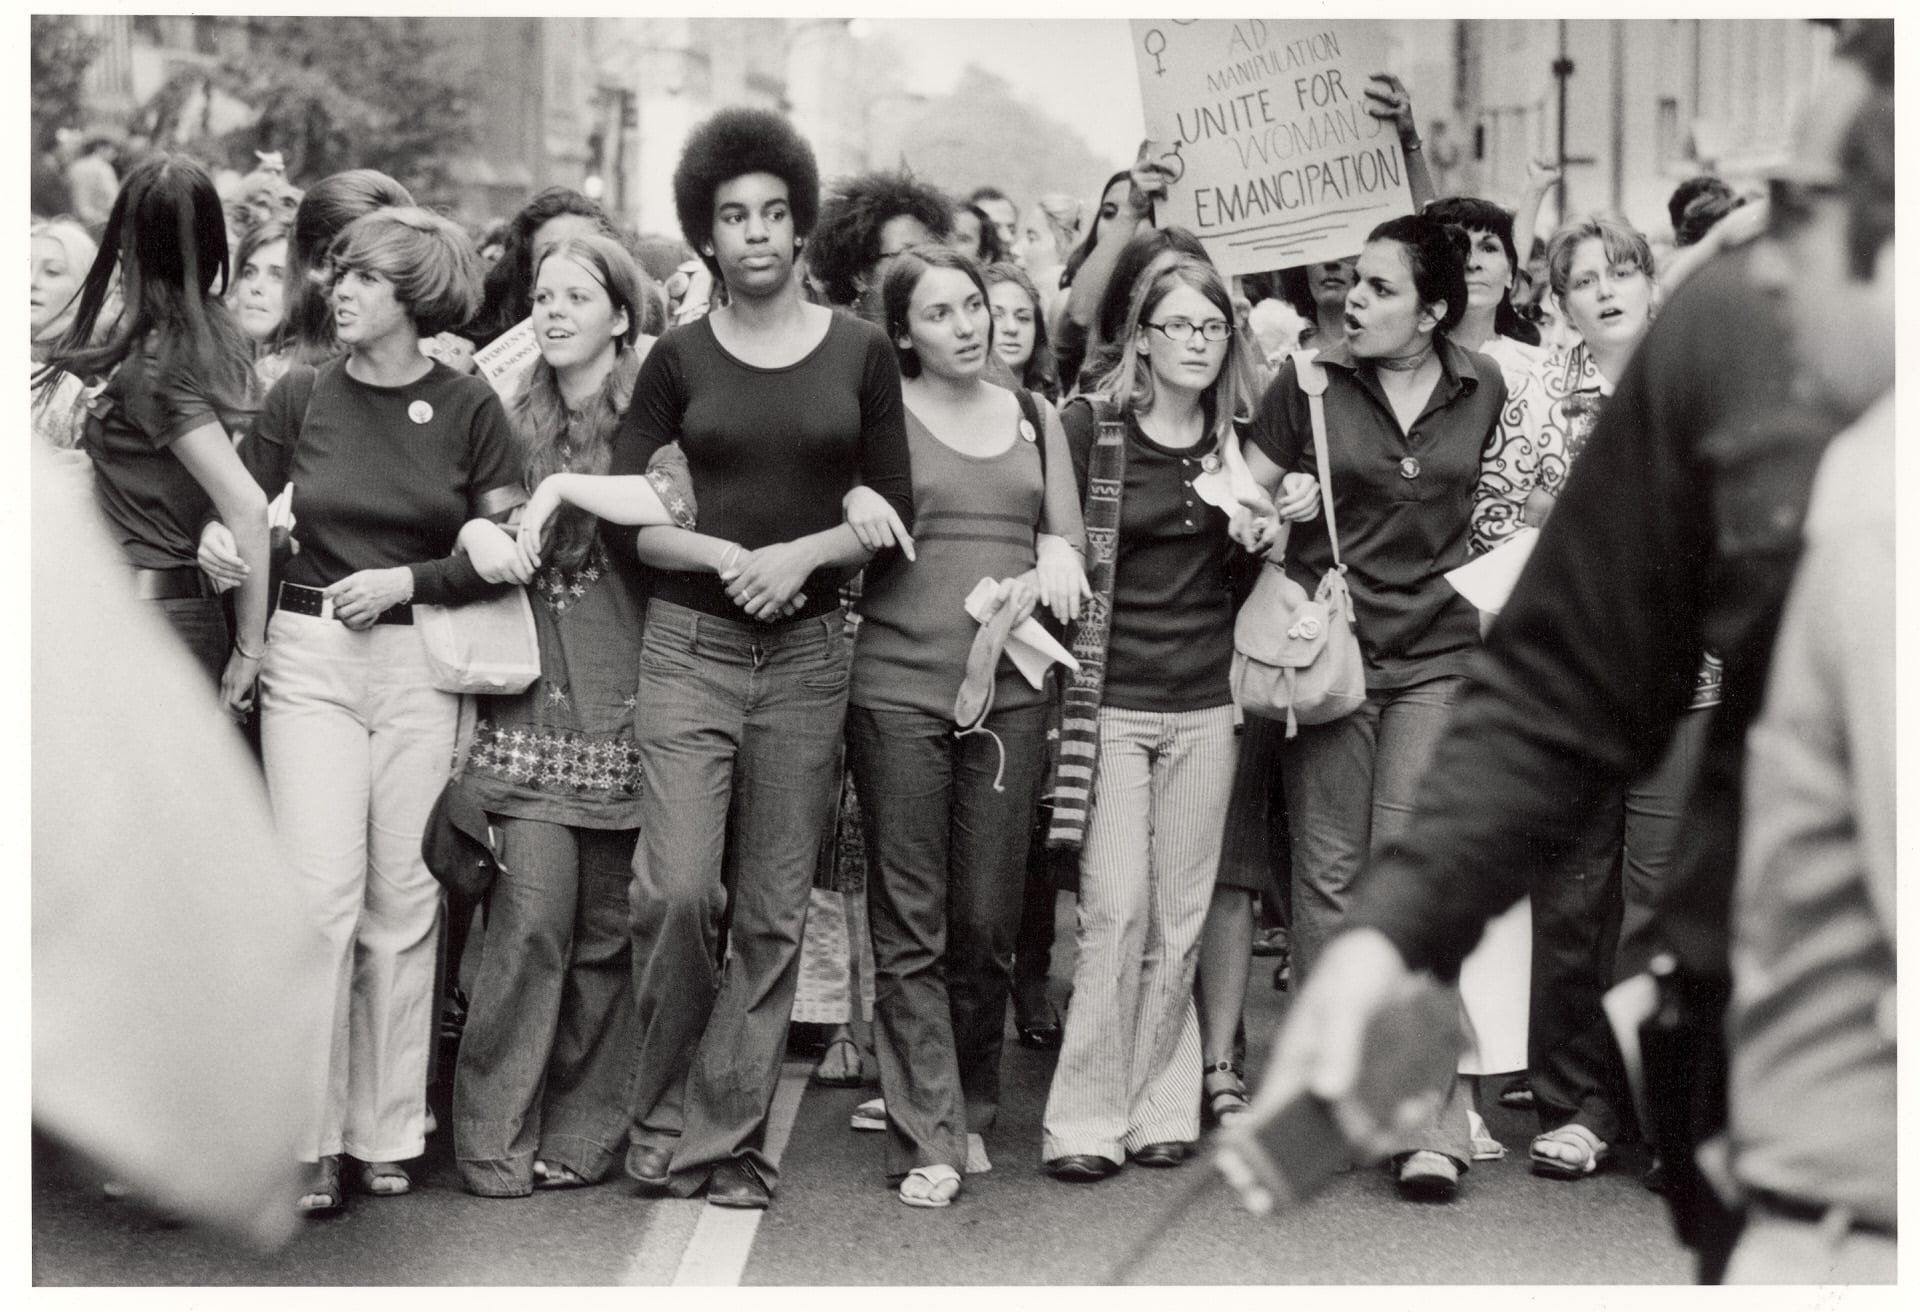 Enthusiastic and resolute women in large parade down Fifth Avenue on the 50th anniversary of the passage of the 19th Ammendment, which granted the women the right to vote, as they march for further women's rights. (Photo by John Olson/The LIFE Picture Collection via Getty Images)